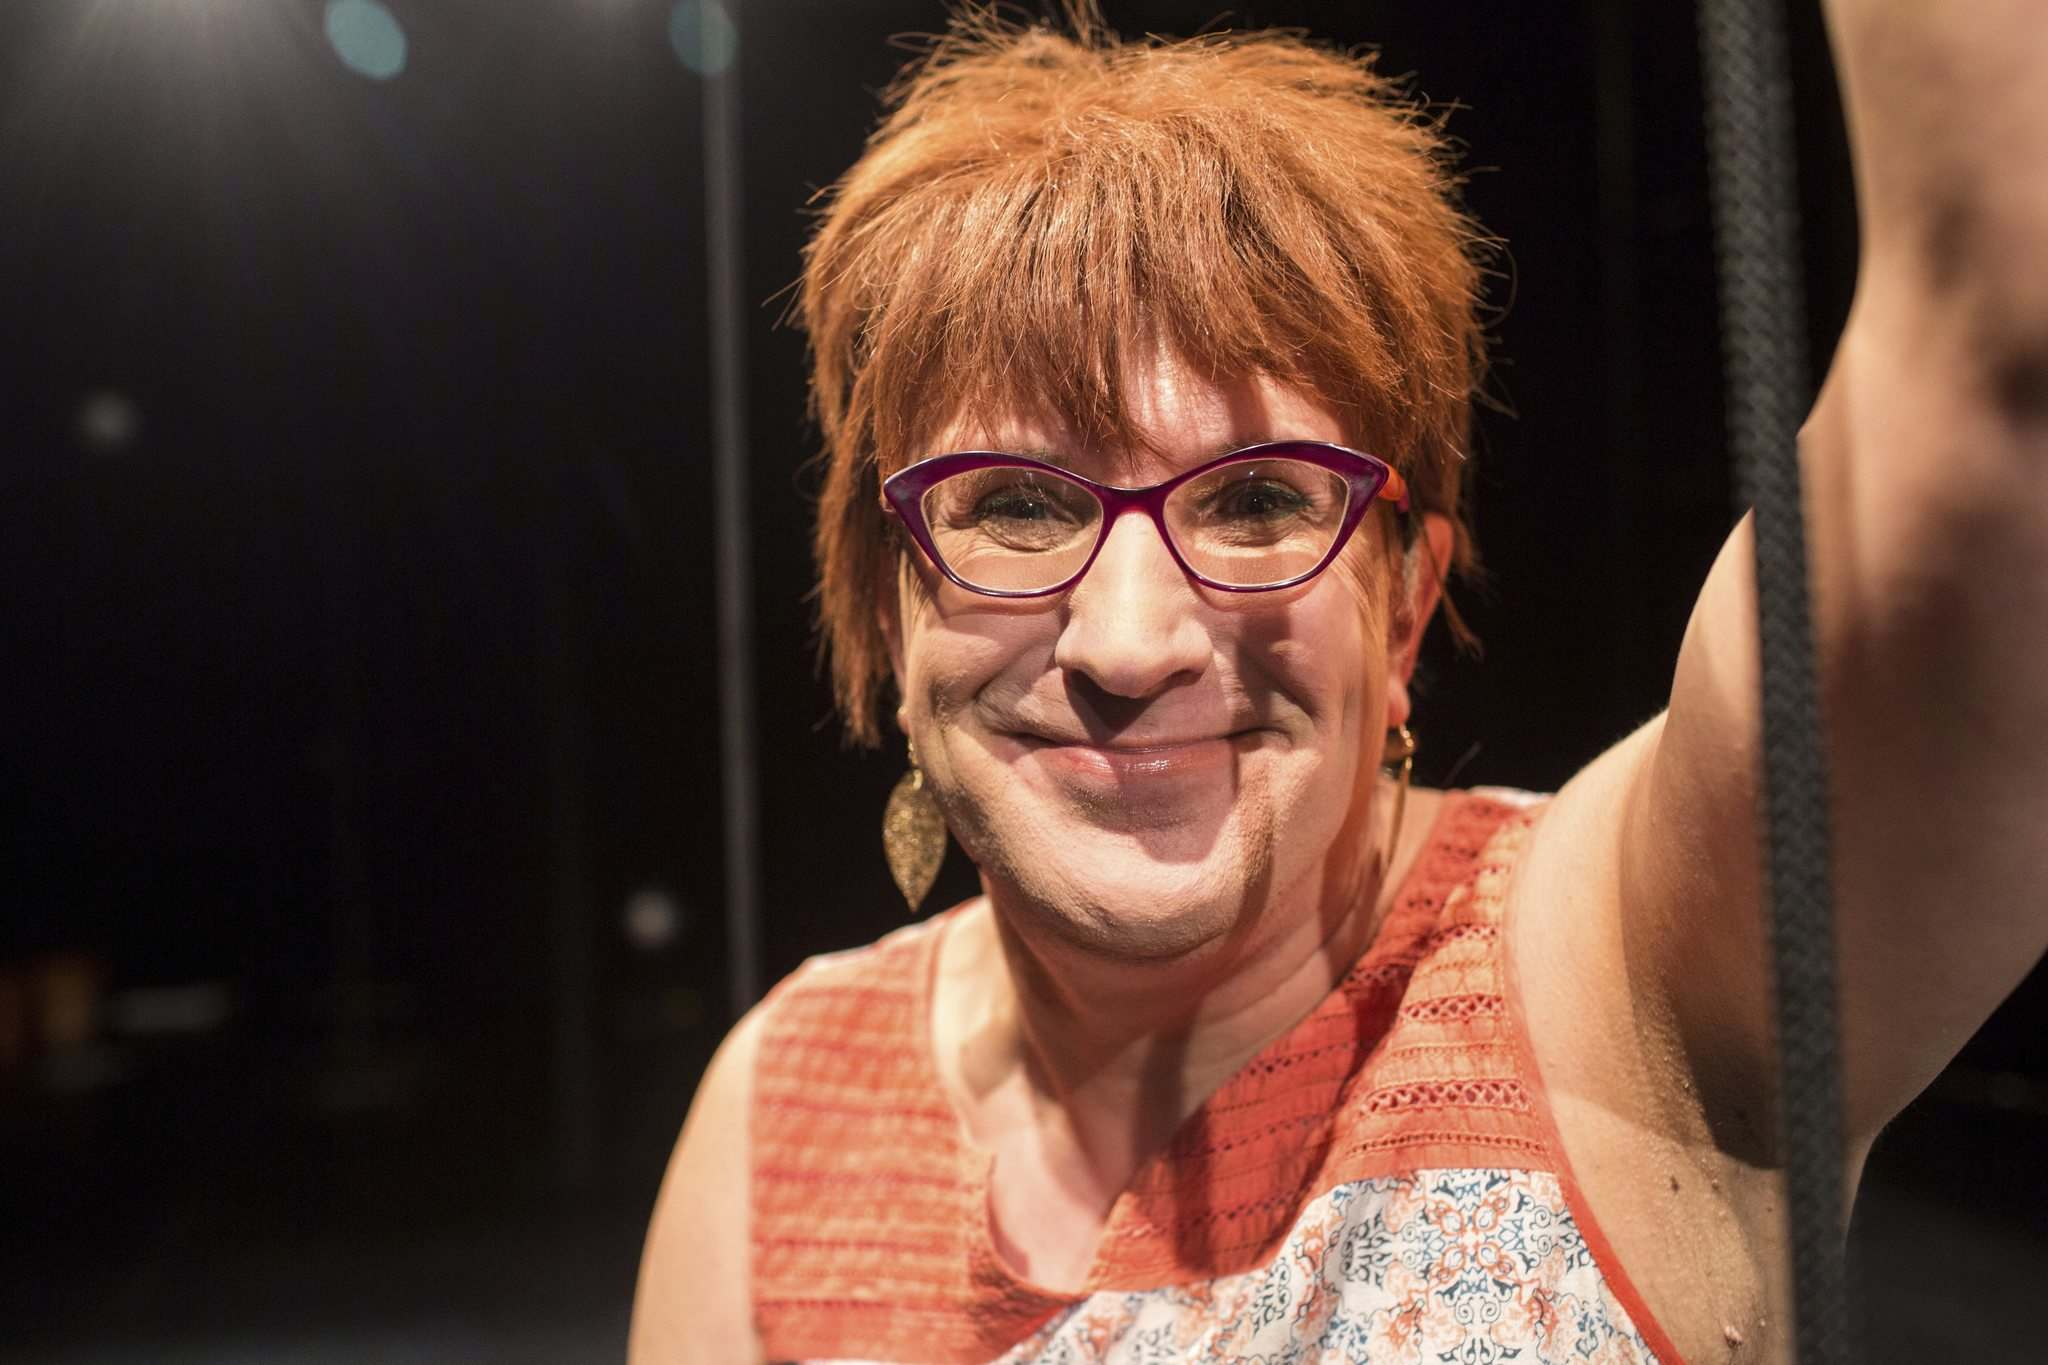 """The centrepiece theme of the play is what Rae calls a half-century """"gender odyssey,"""" which culminated in early 2015 with the process of gender transition. (Mikaela MacKenzie / Winnipeg Free Press)</p>"""